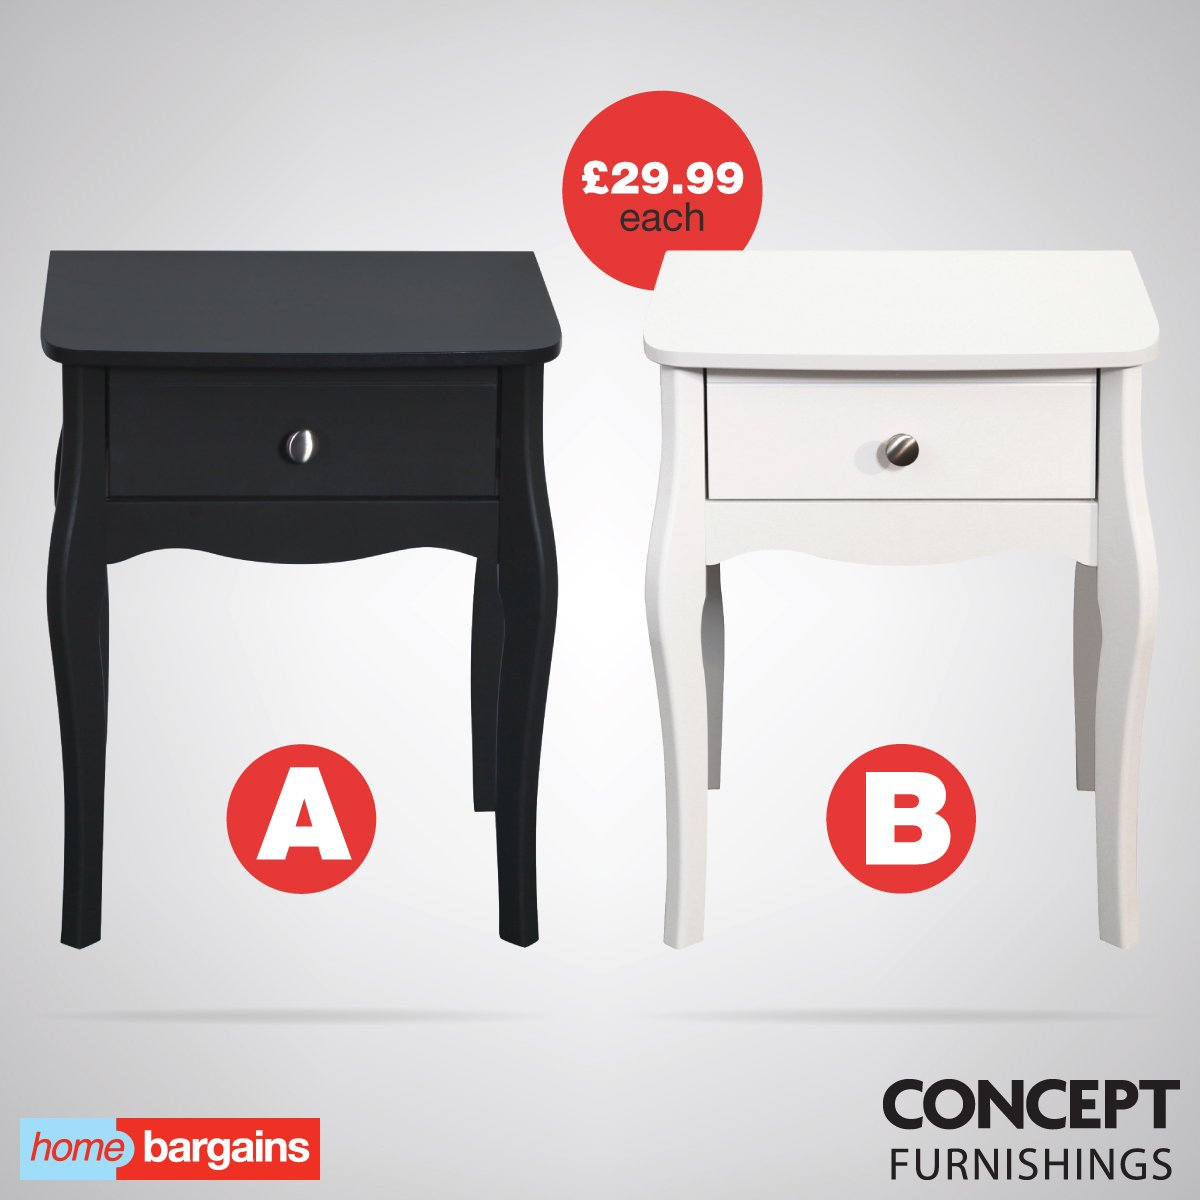 Home bargains bathroom cabinets - Home Bargains On Twitter Vote Now A Or B Simple Yet Stylish